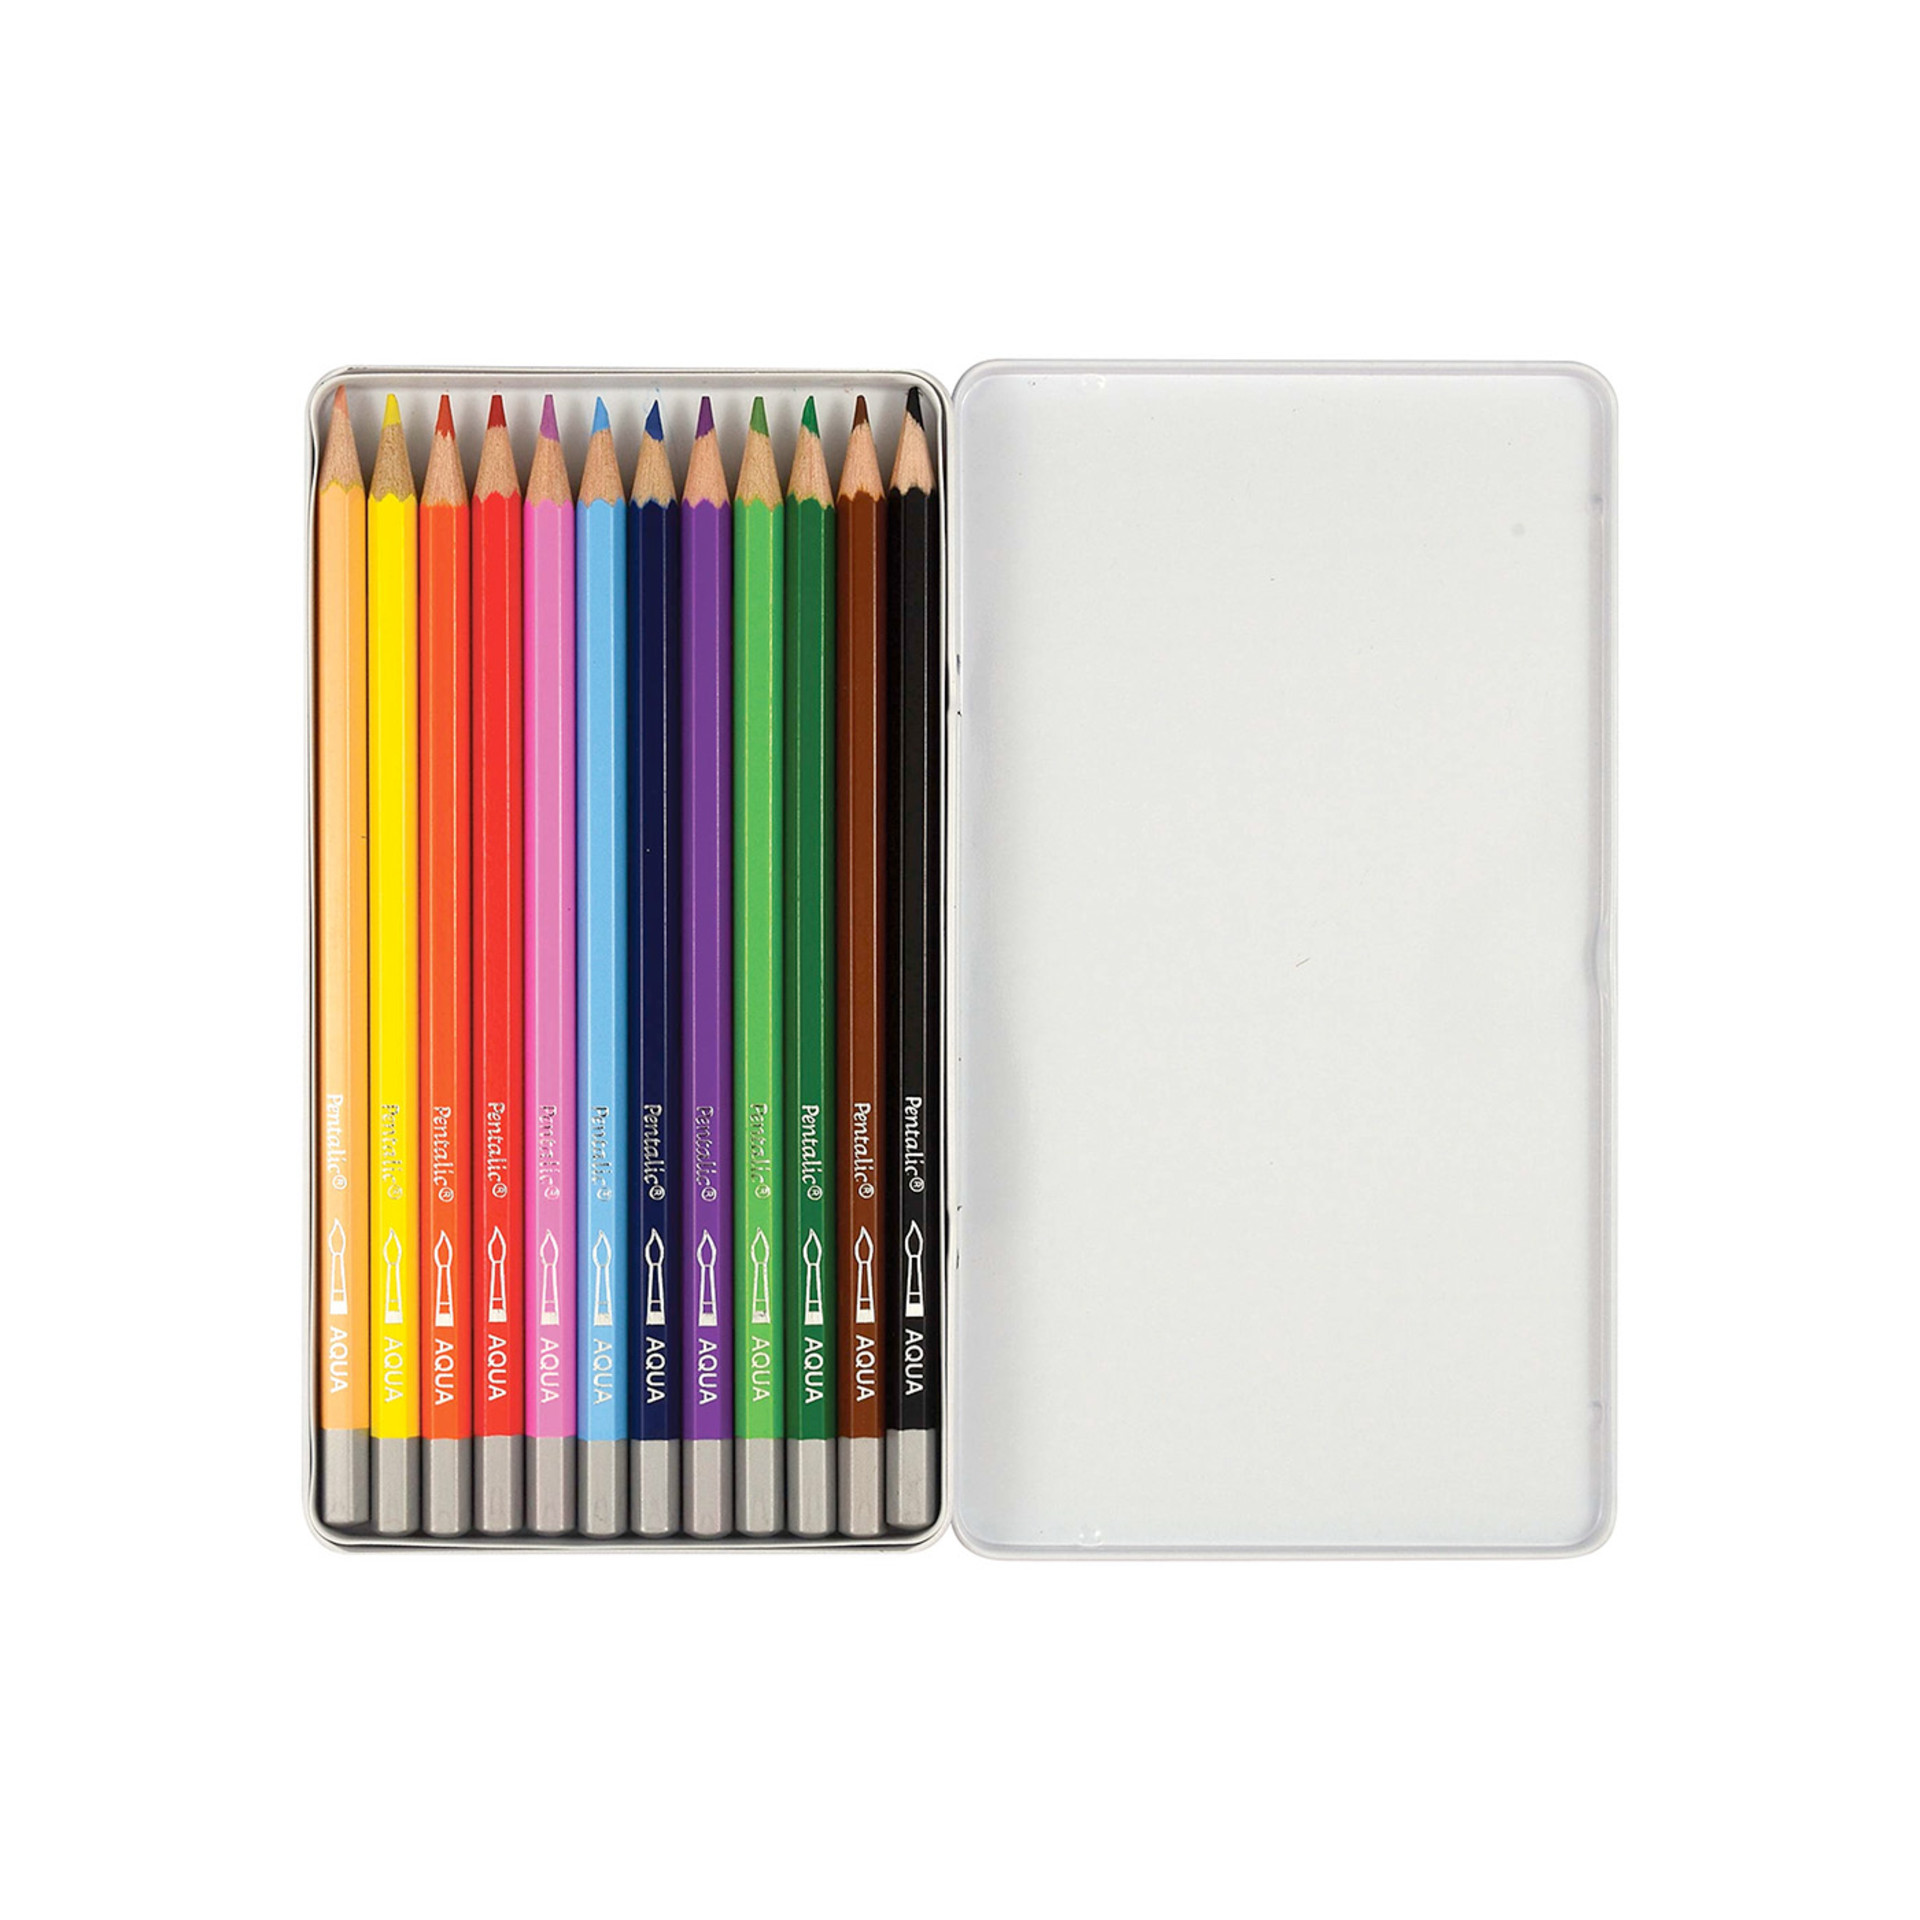 Pentalic Watercolor Pencil Set 24